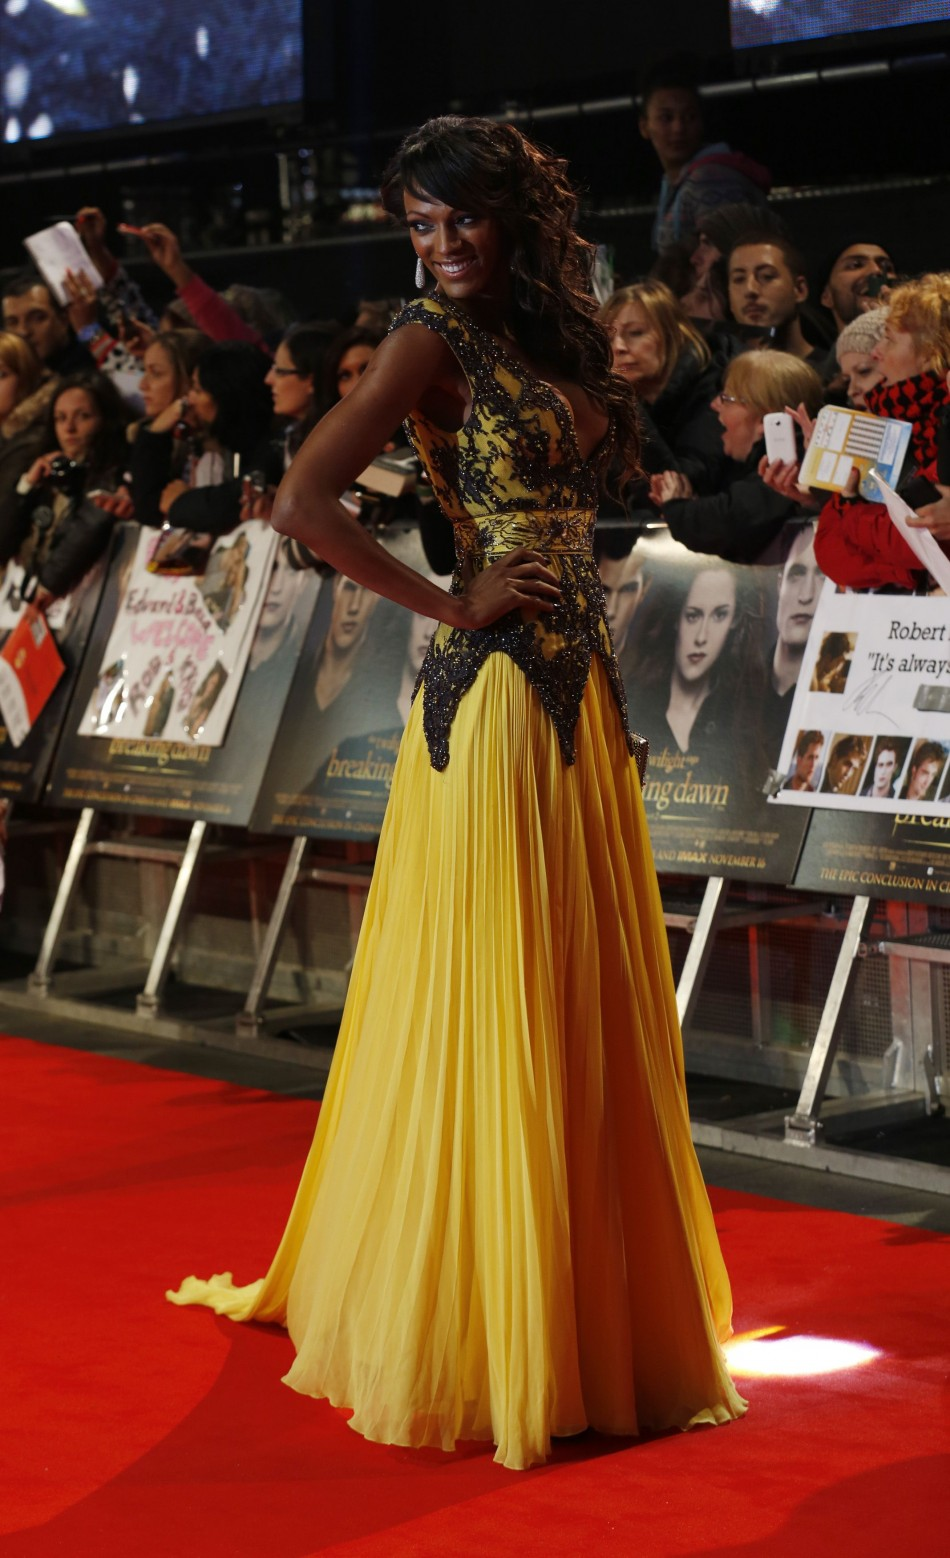 Actress Judi Shekoni arrives for the European premiere of The Twilight Saga Breaking Dawn Part 2 in London